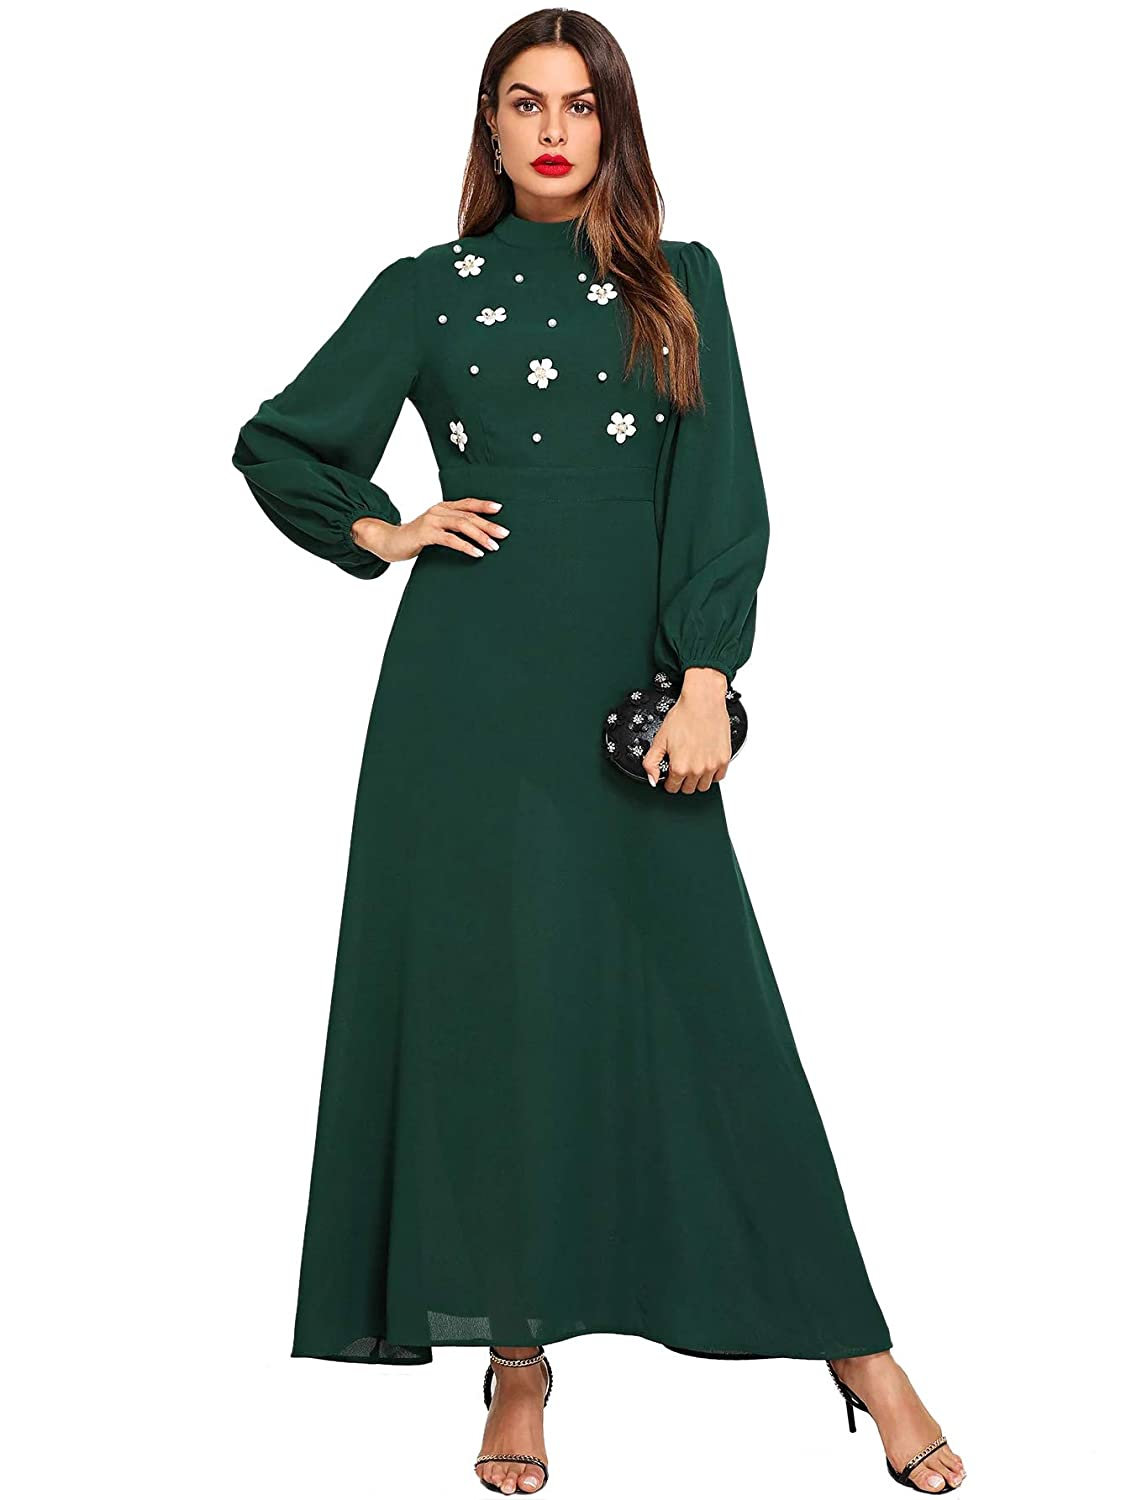 1930s Day Dresses, Afternoon Dresses History Verdusa Womens Mock Neck Long Sleeve Floral Embroidery Belted Maxi Dress $36.99 AT vintagedancer.com